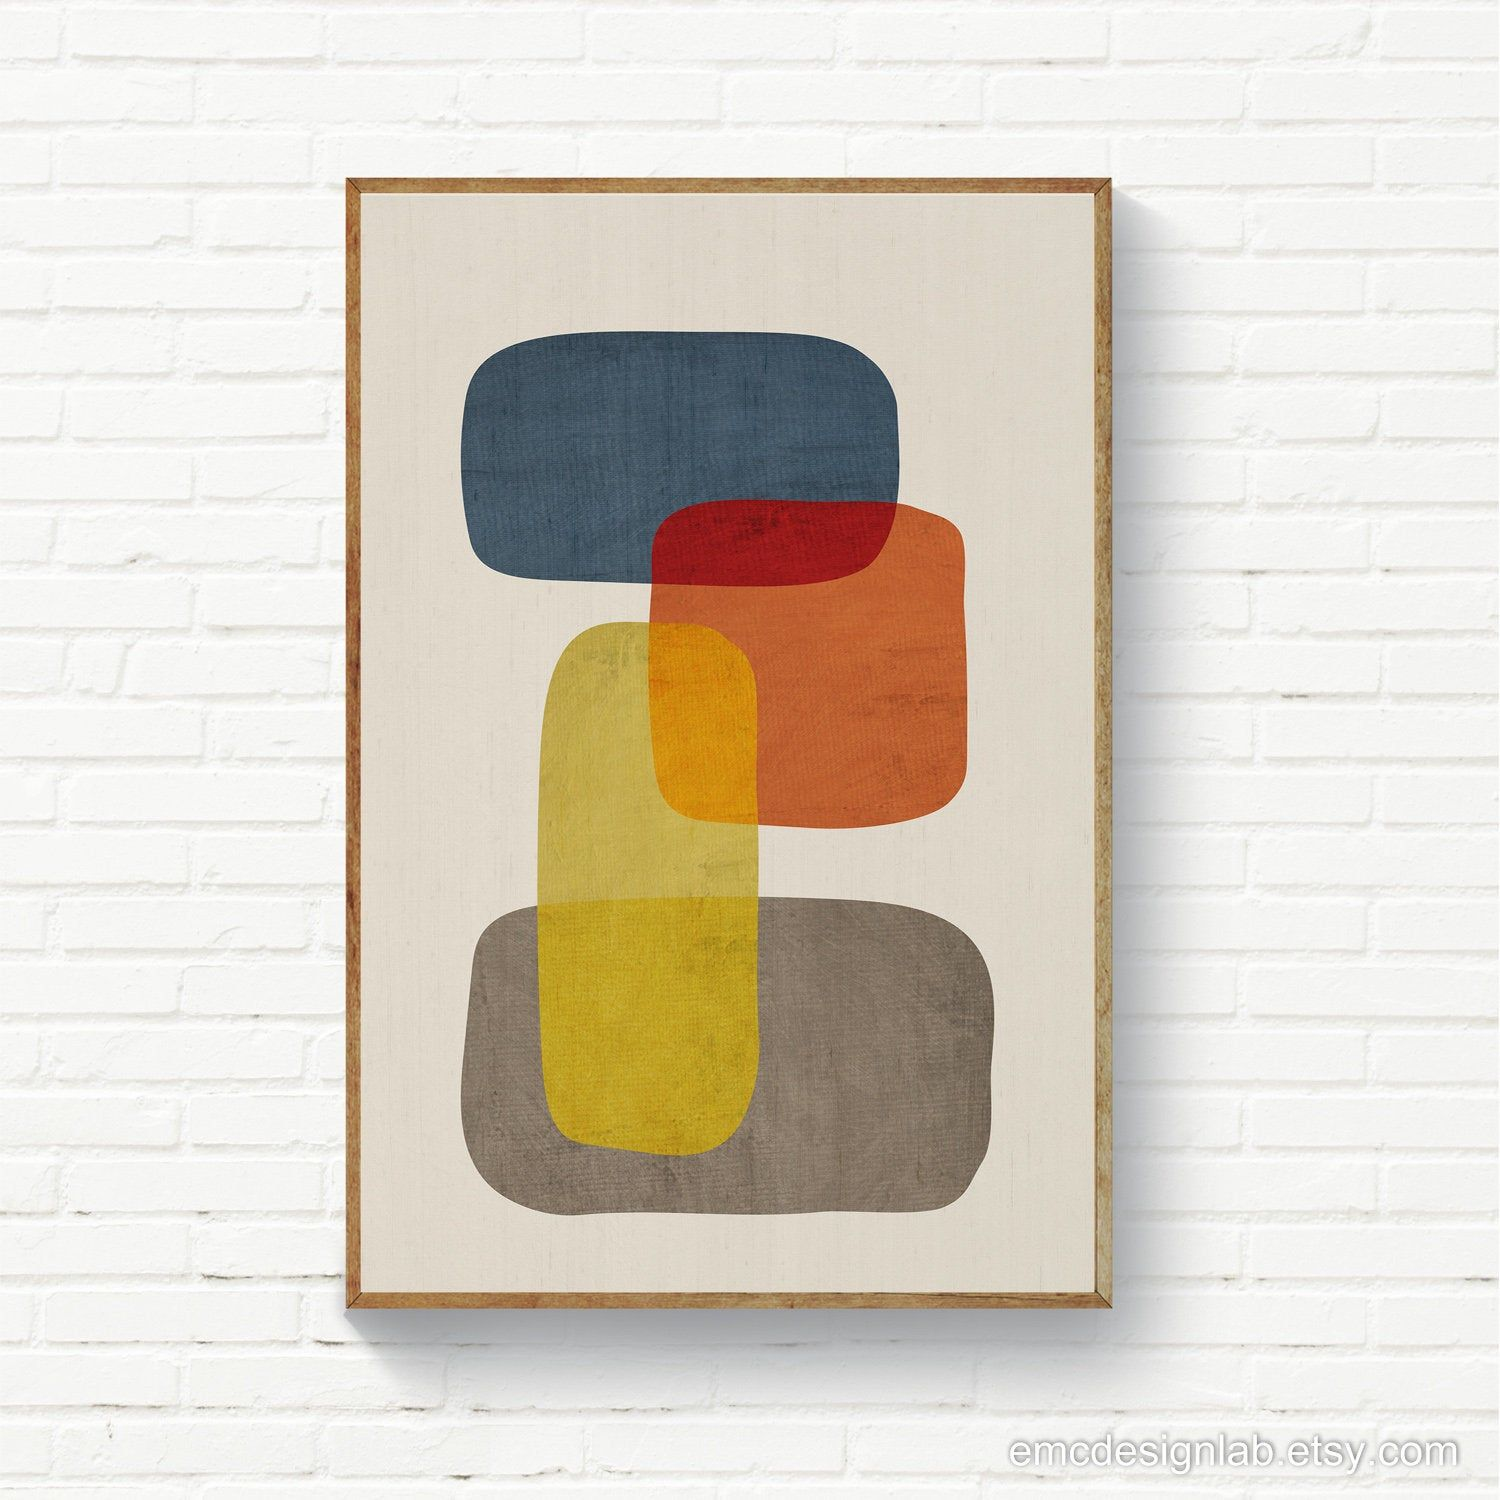 Minimalist Mid Century Modern Organic Shapes Abstract Artwork In Orange Yellow Gray Blue Minimalism Modern Art Instant Download Original Wall Art Modern Art Colorful Art